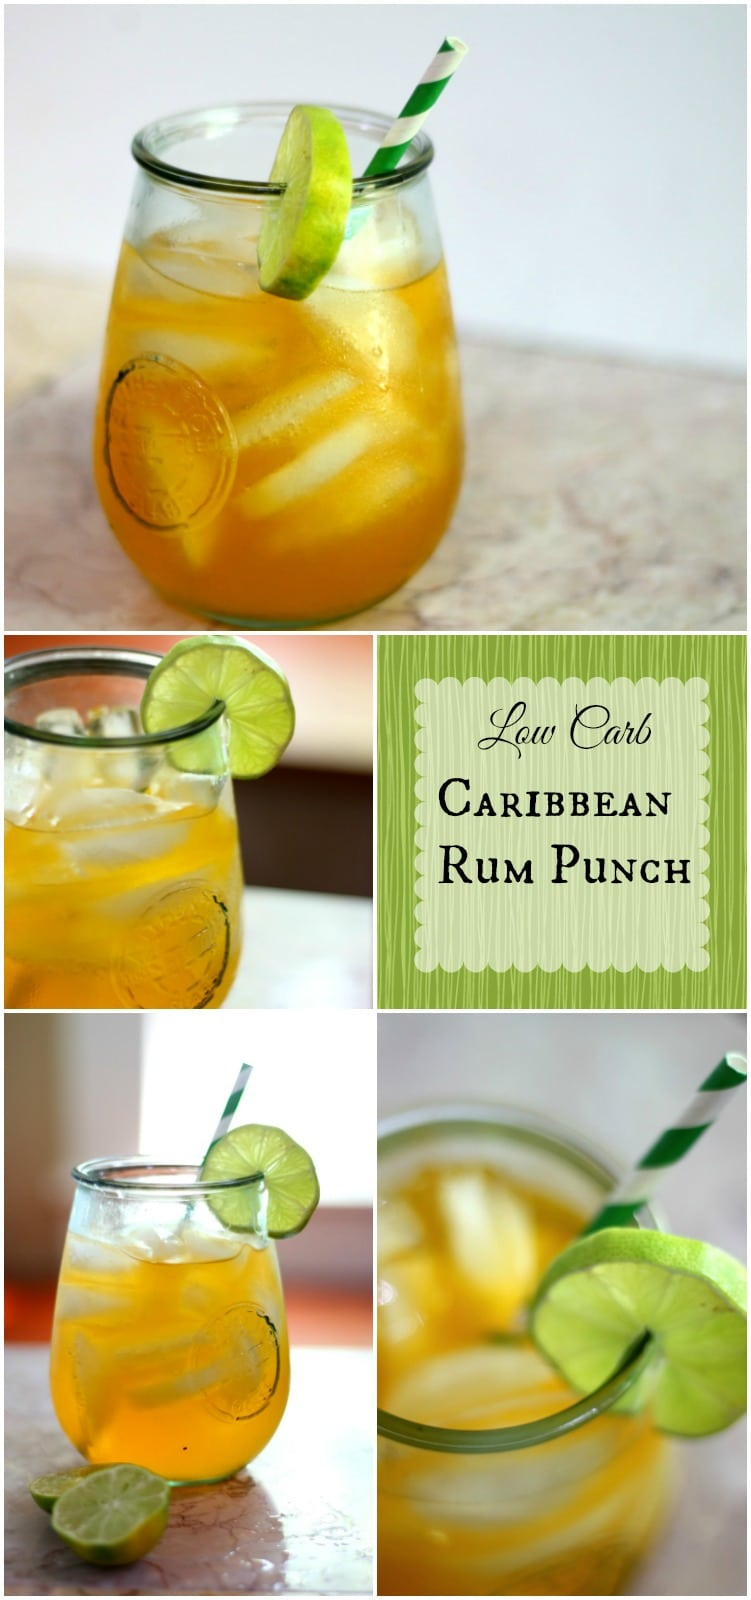 Low carb Caribbean Rum Punch has less than 1 carb -- It's an Atkins friendly cocktail and it's so good! From Lowcarb-ology.com